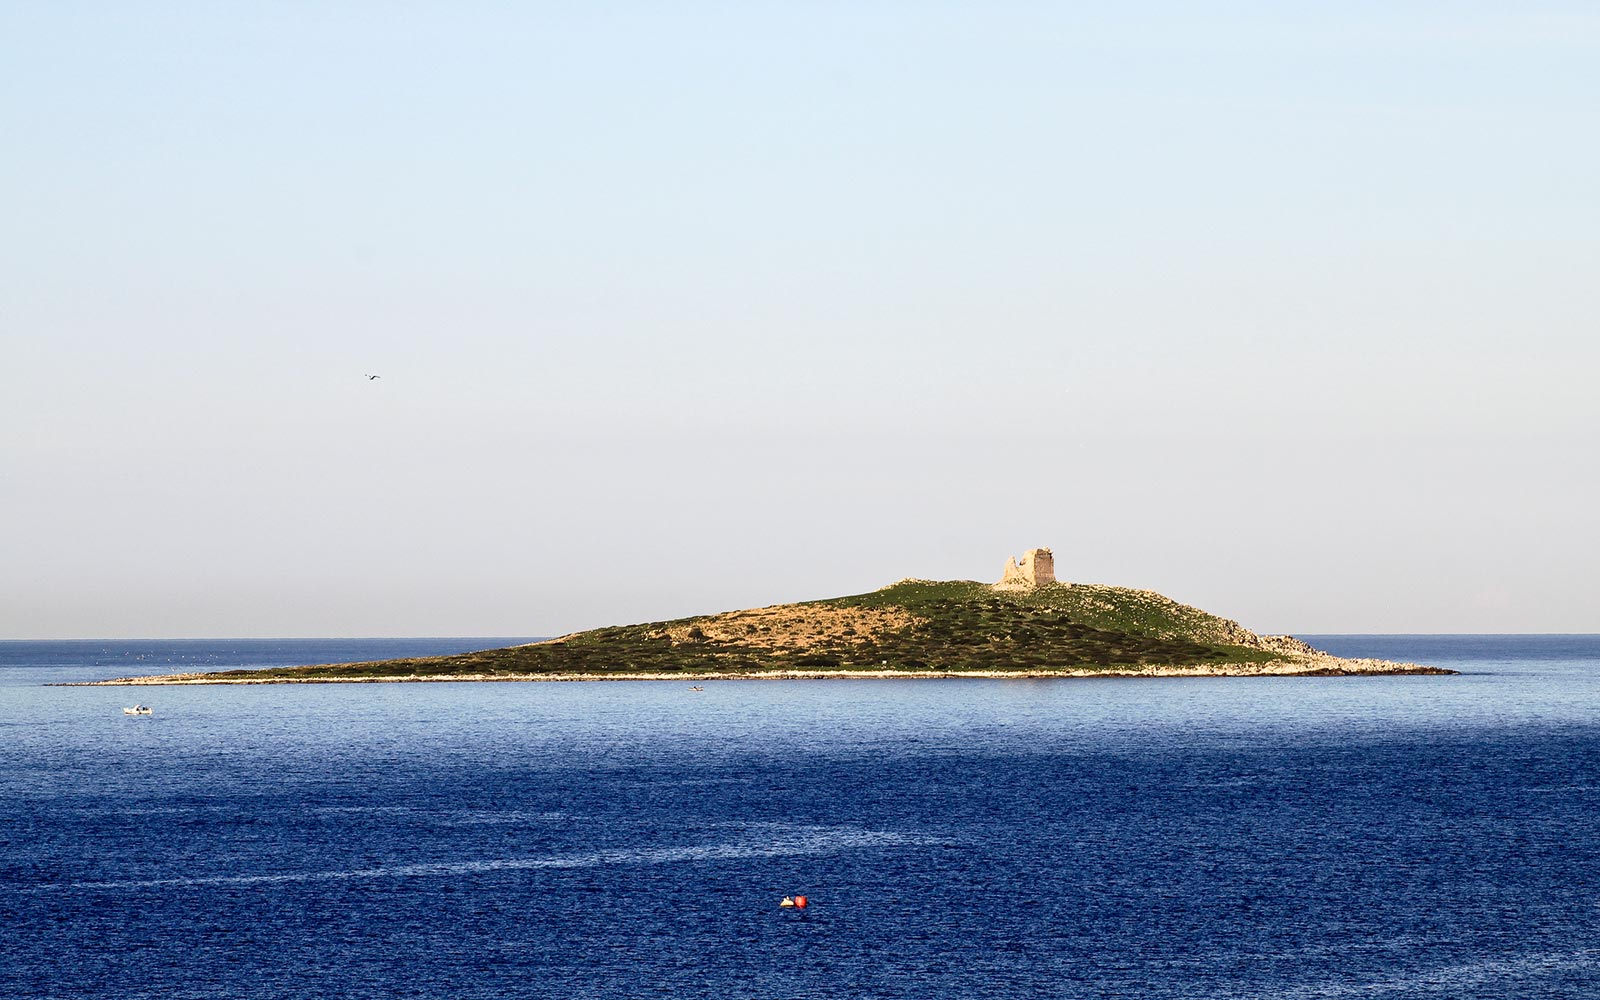 You Can Own a Private Island Off the Coast of Sicily for $1.1 Million